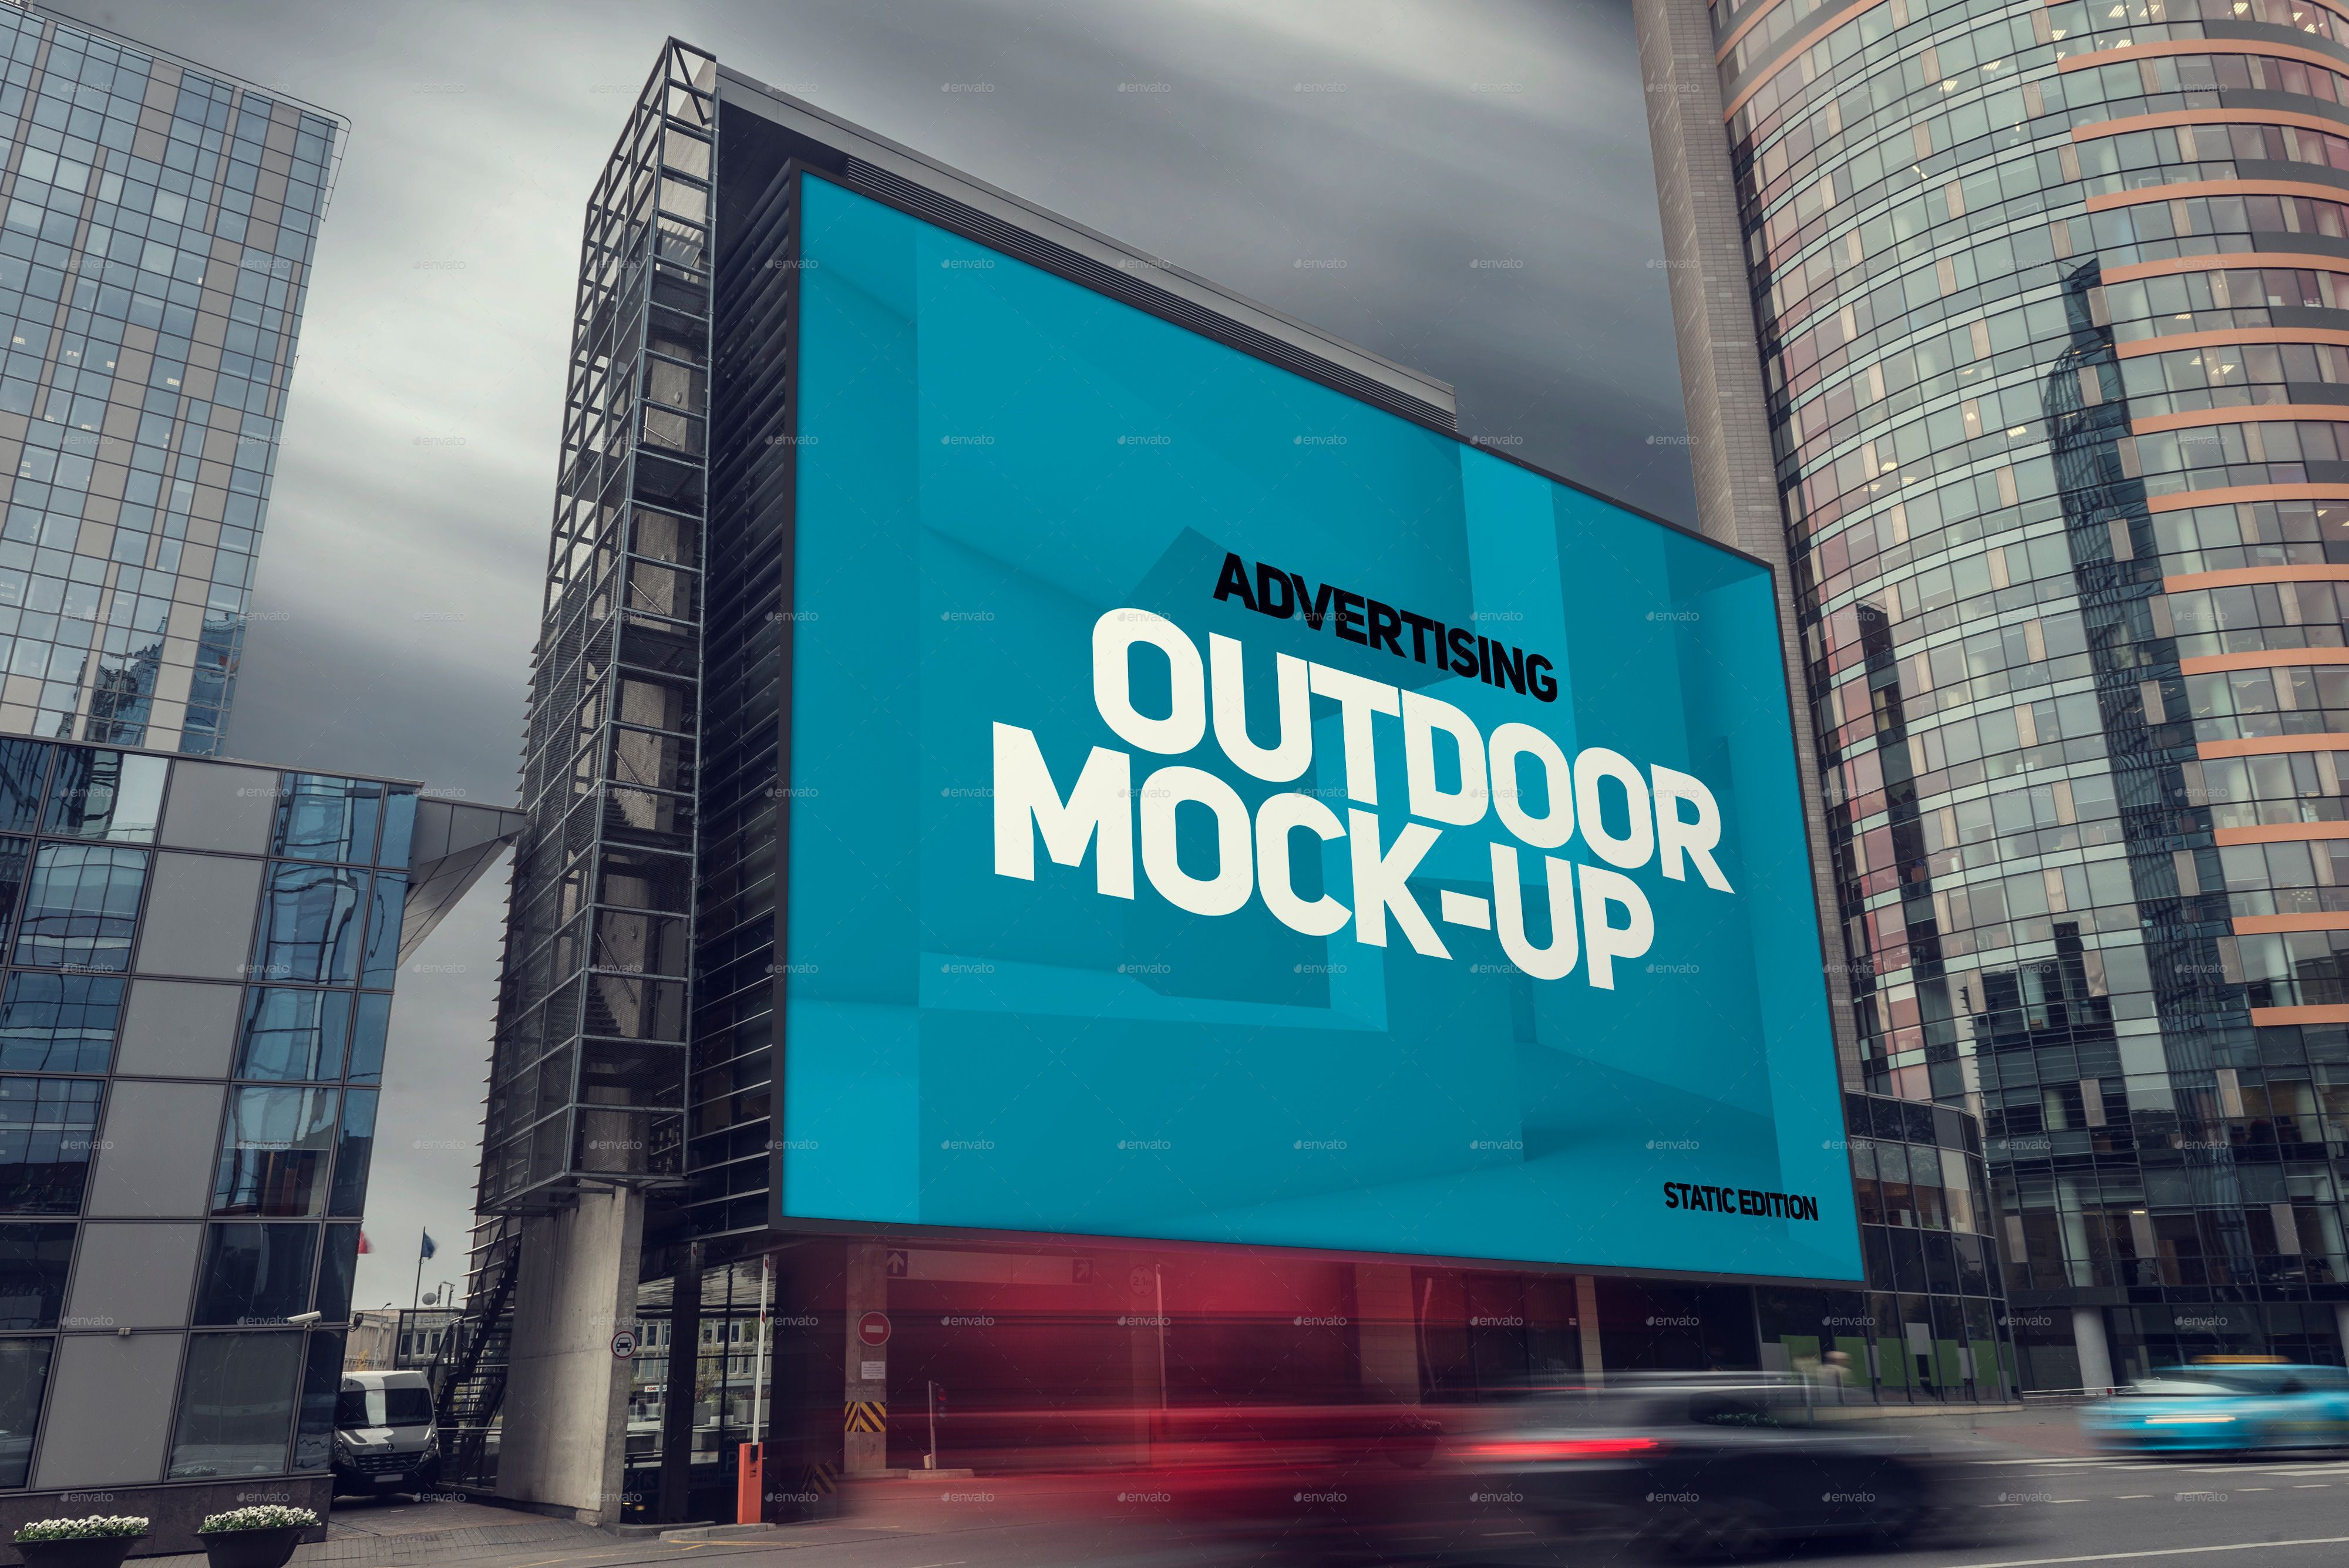 Animated Outdoor Advertising Mock-ups | Mockup, Advertising and ...